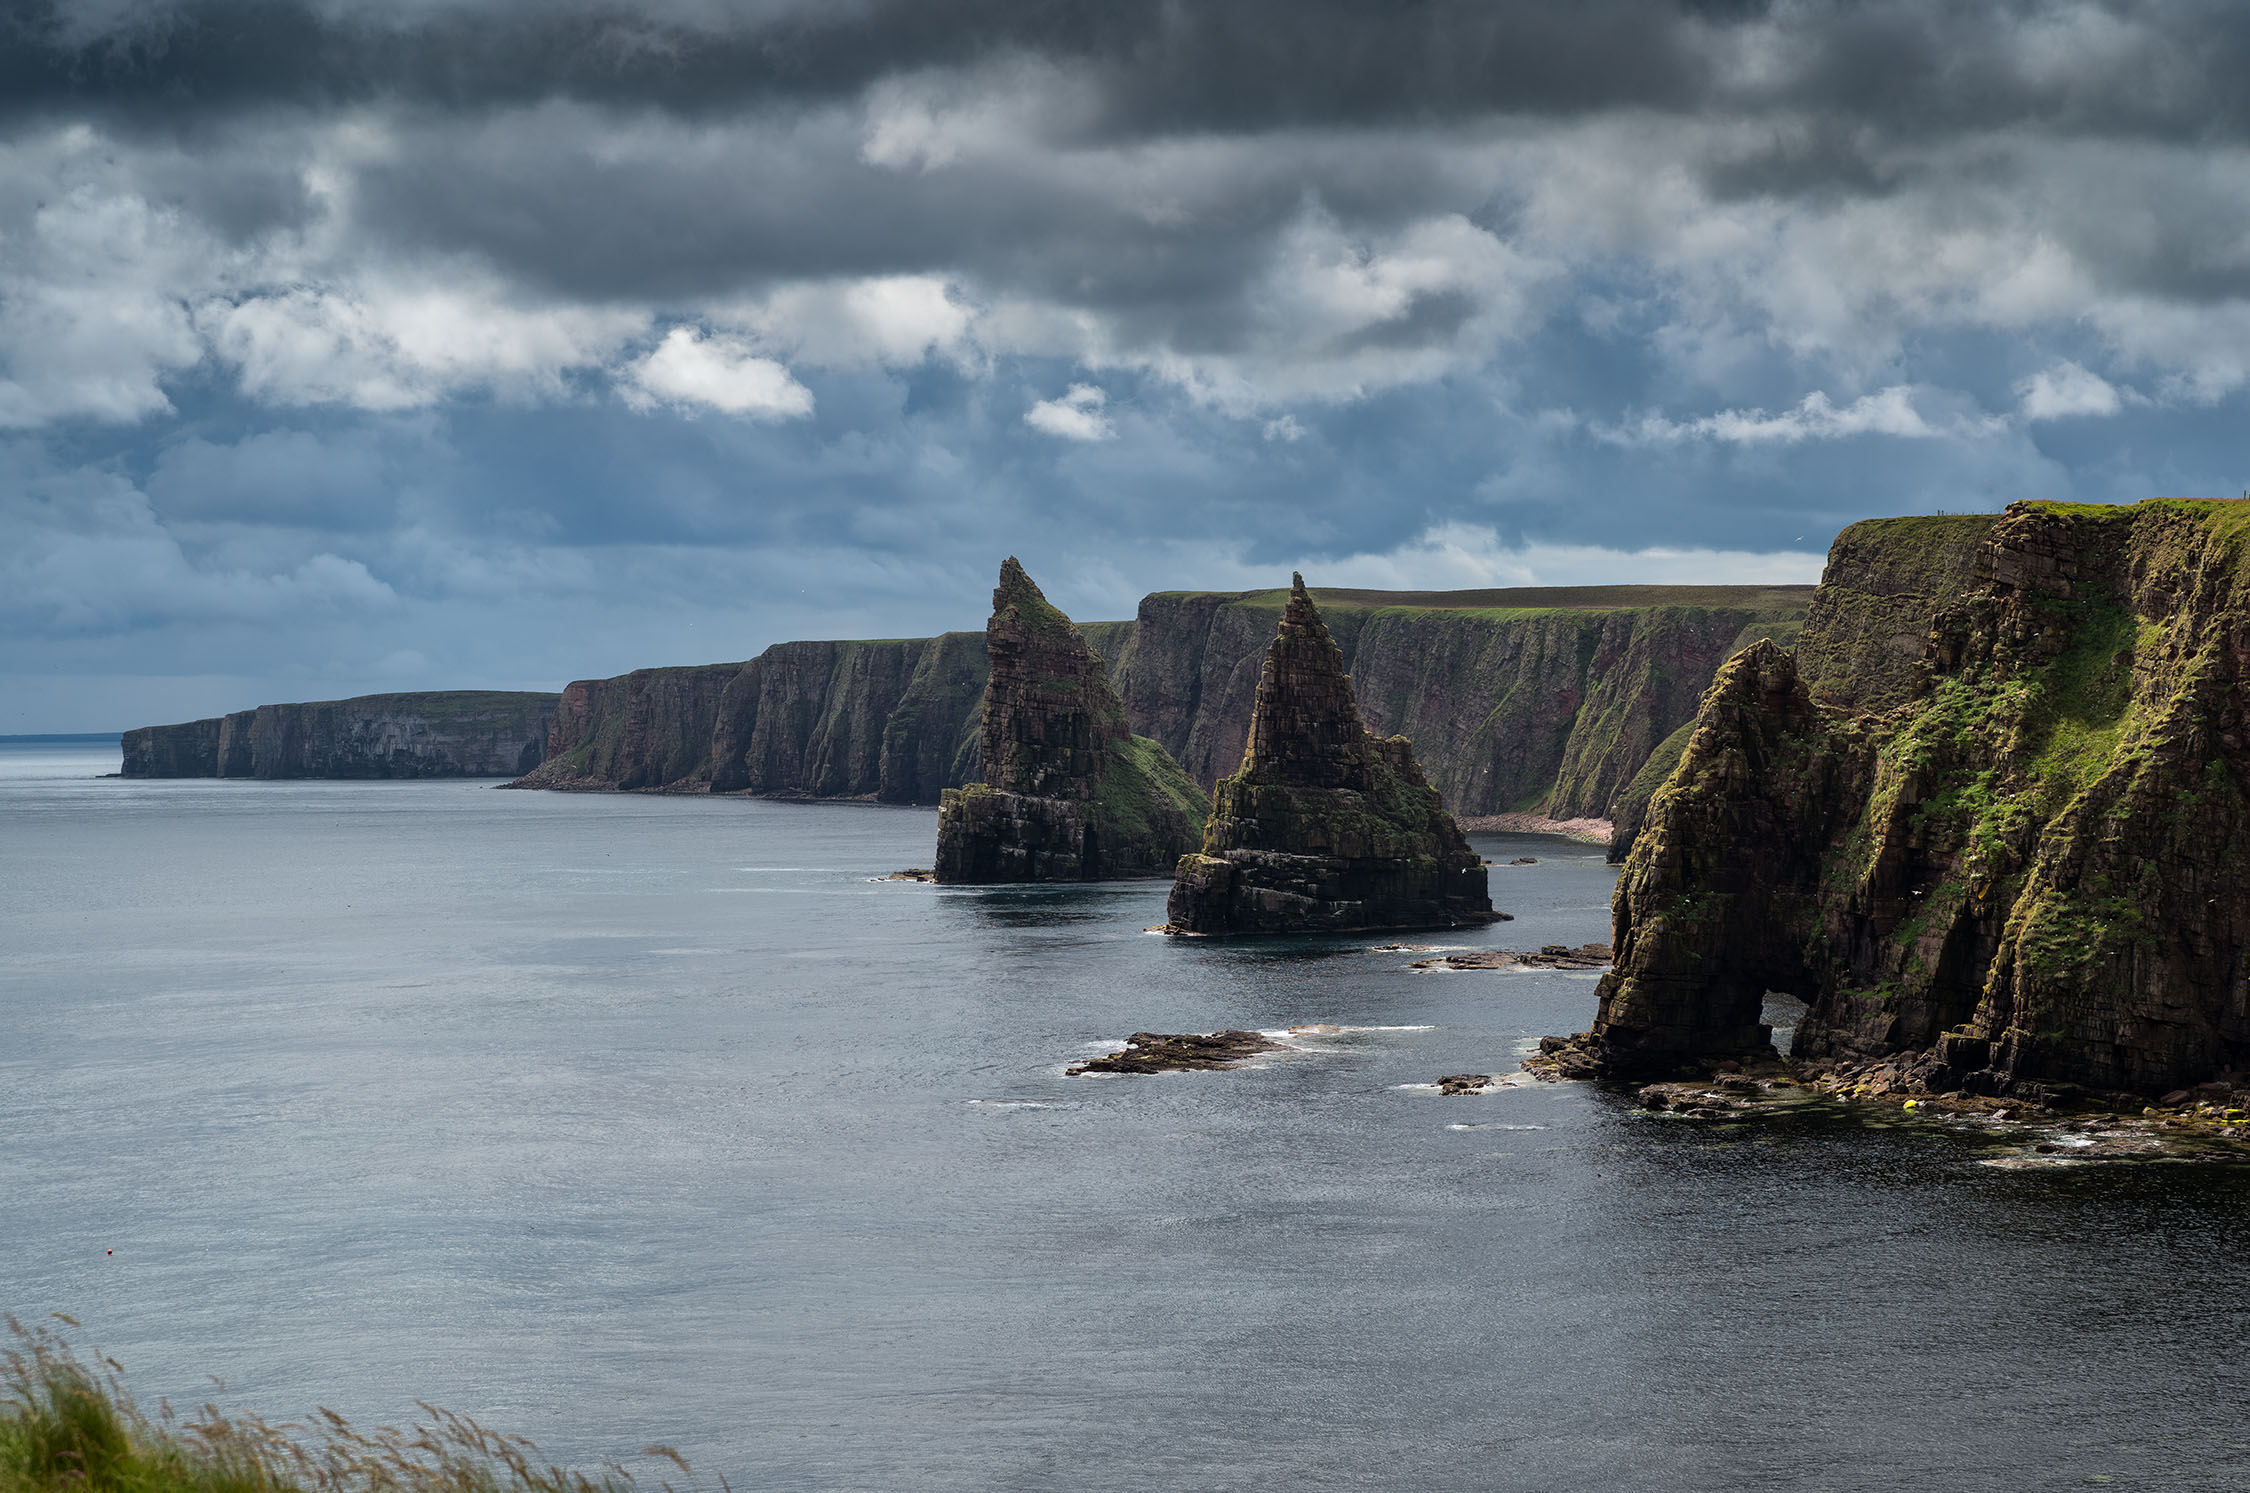 Sea Stacks and Cliffs, Duncansby Head. Leica S2. Bob Hamilton